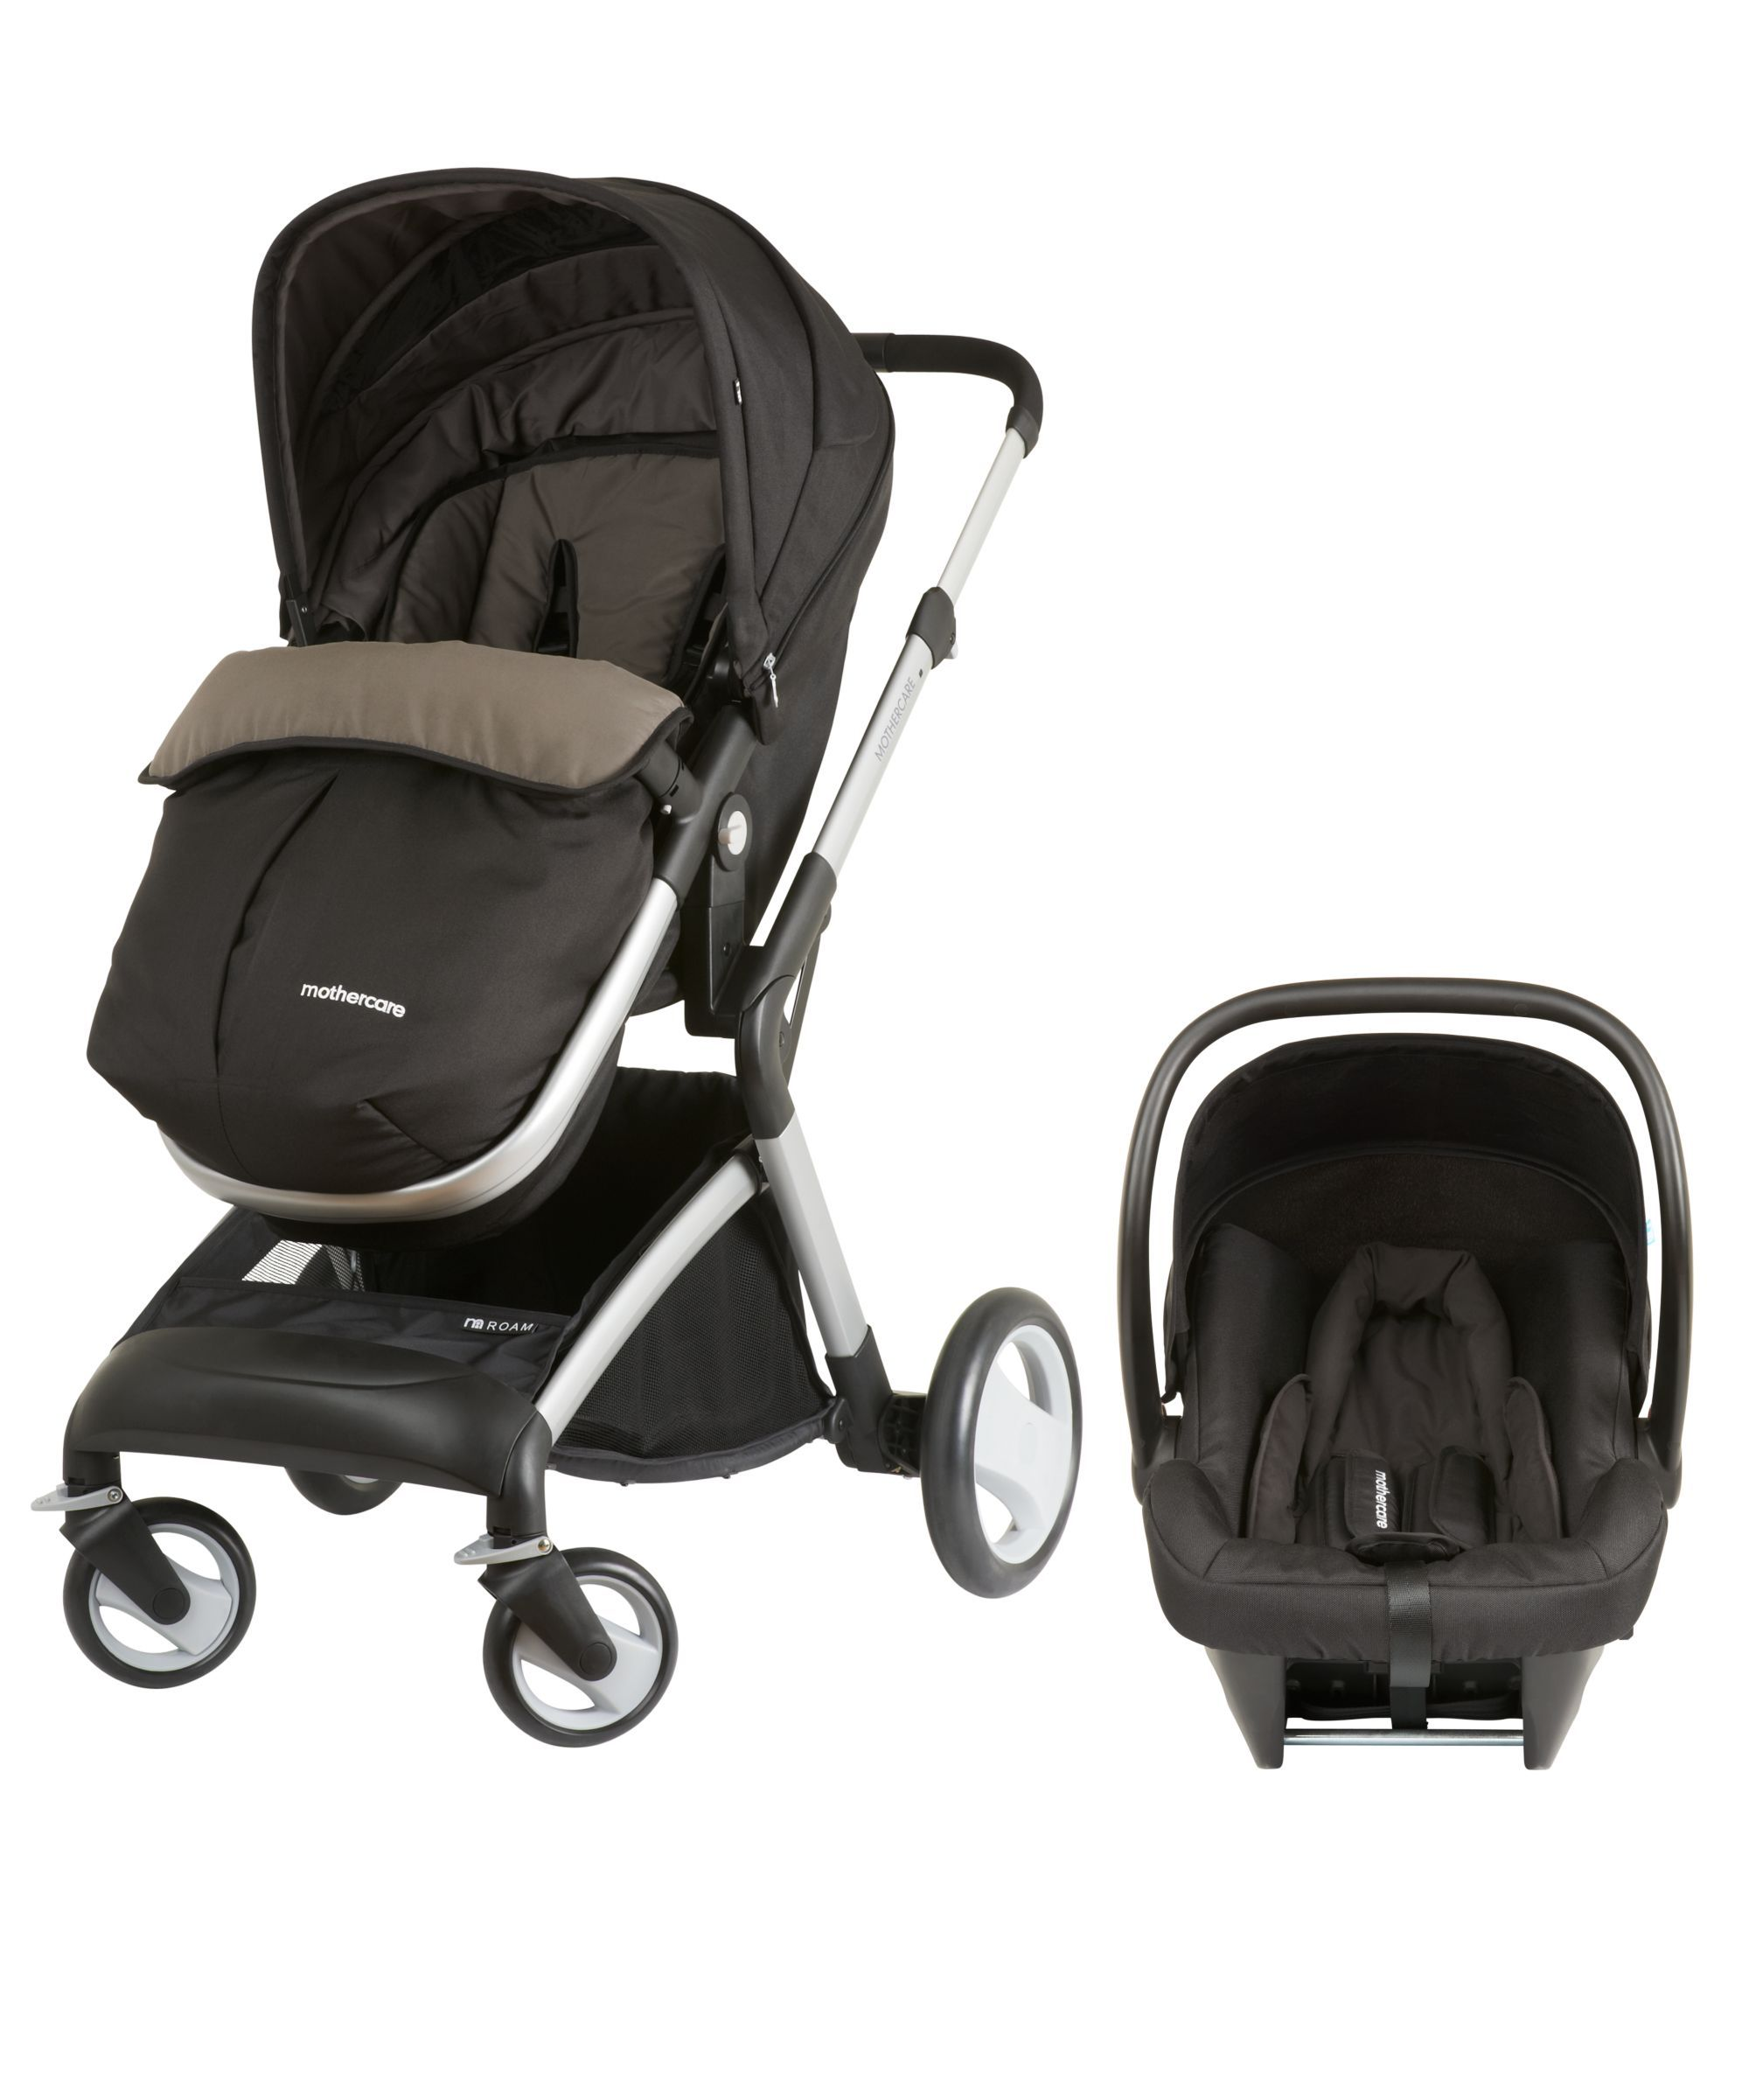 Mothercare Roam Pram & Pushchair Travel System Black